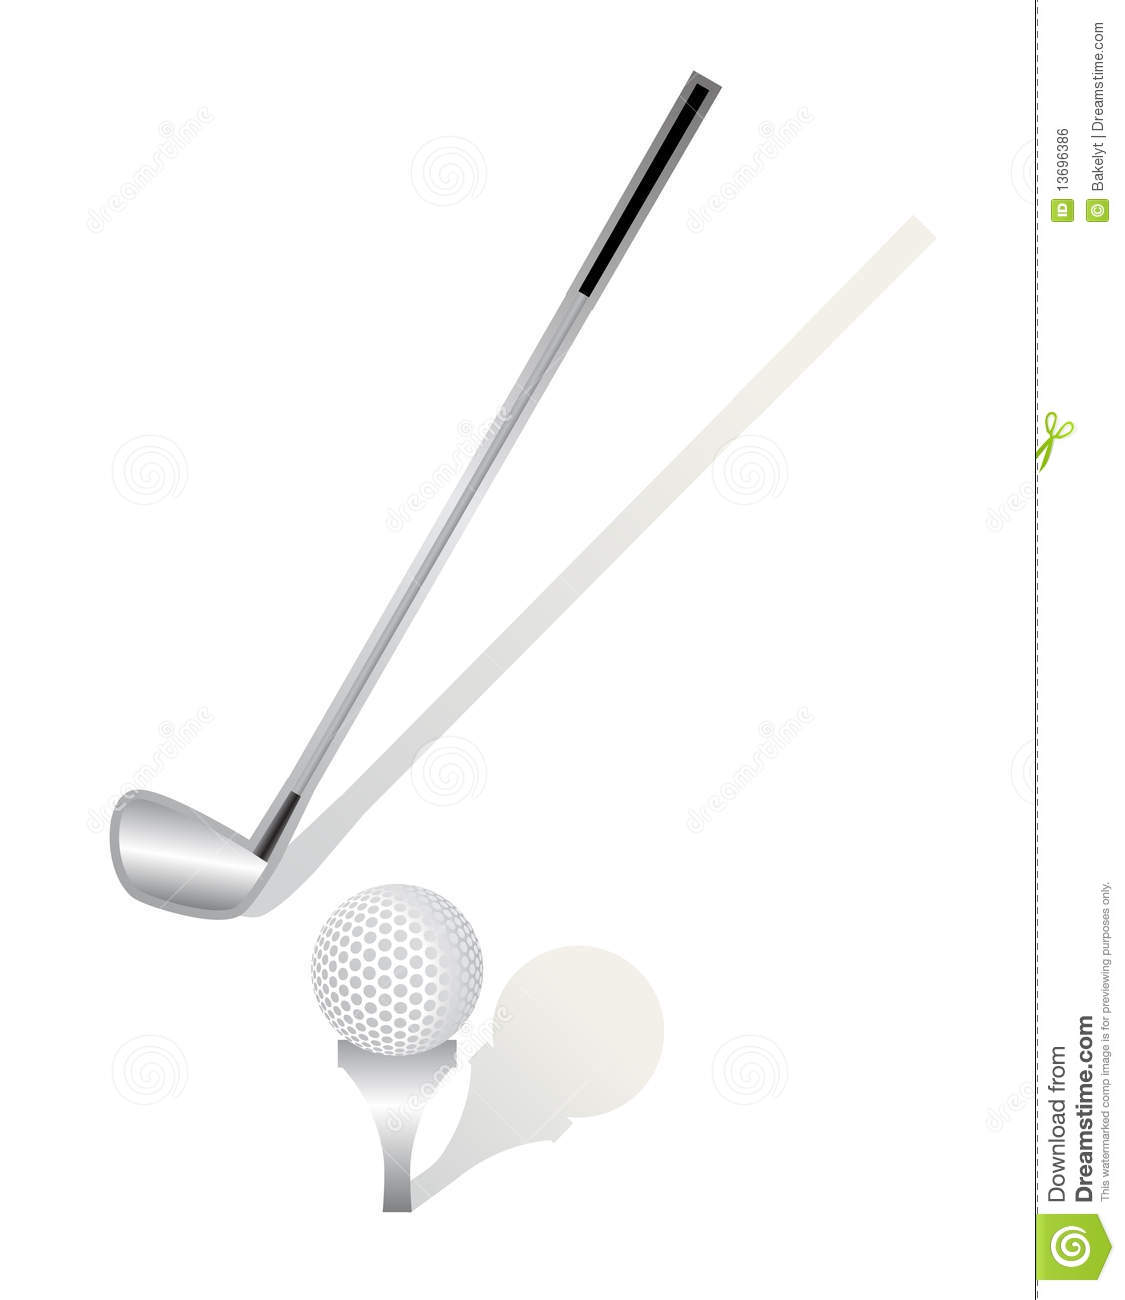 Golf Stick And Ball Royalty Free Stock Image - Image: 13696386